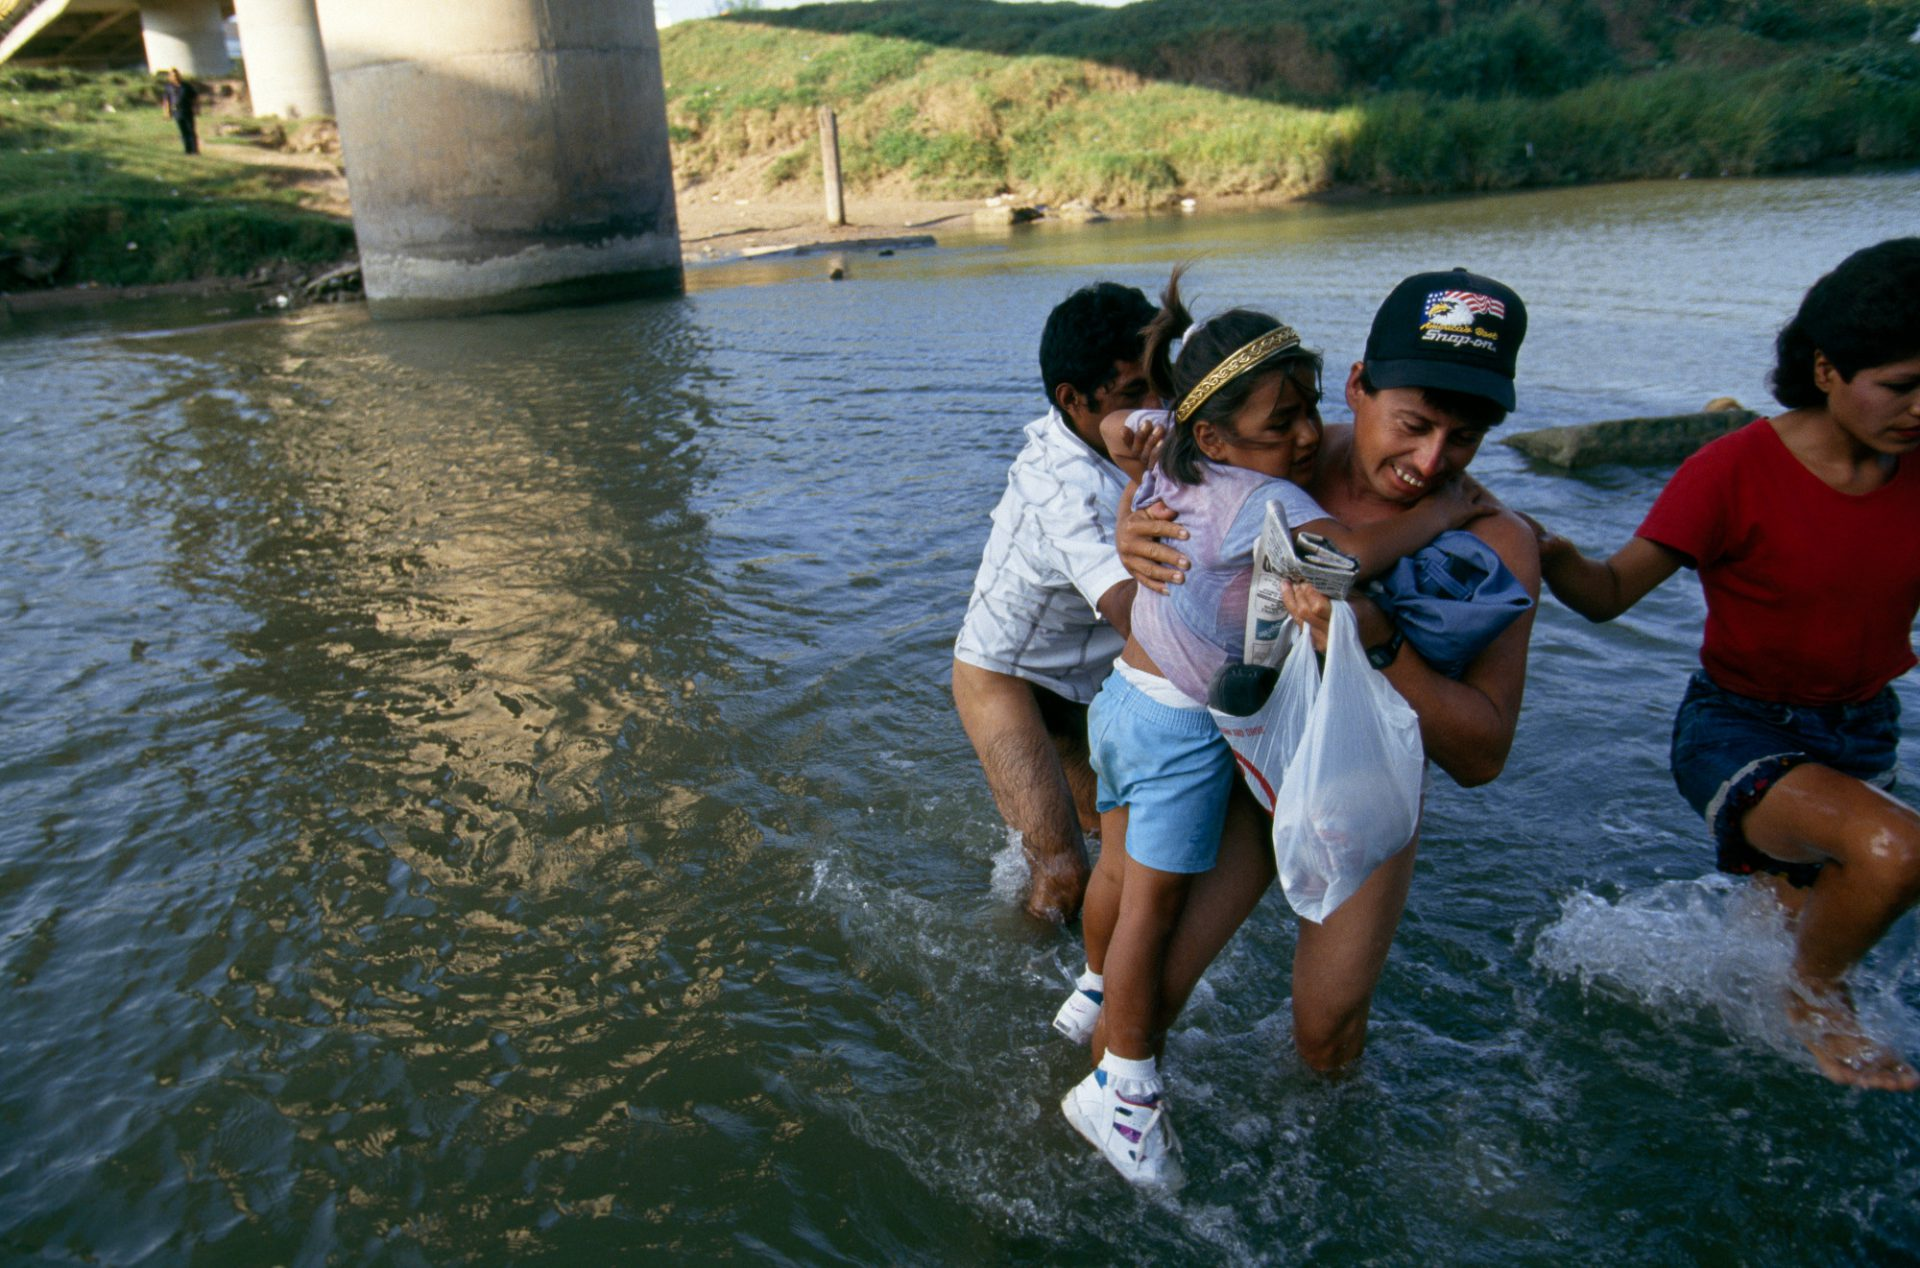 Photo: A Mexican family wade across the Rio Grande beneath the International bridge, leaving Matamoros and entering Brownsville, Texas illegally.